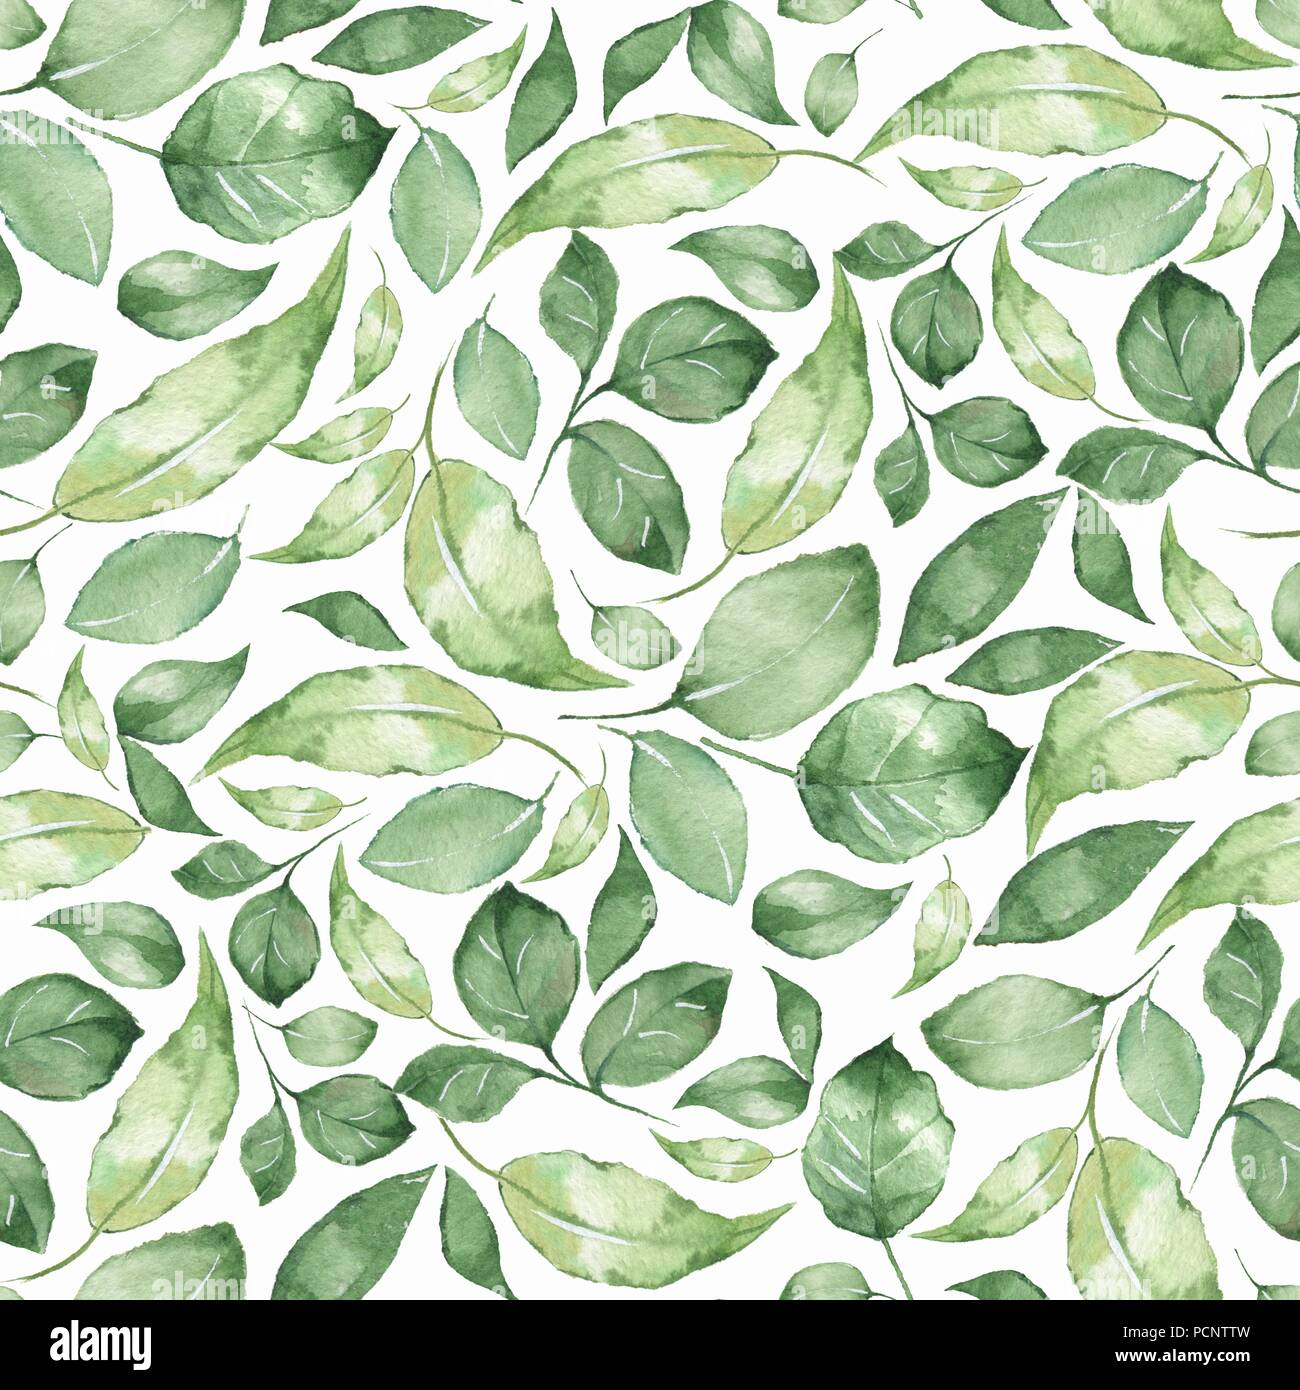 Floral pattern. Seamless background with green watercolor leaves - Stock Image